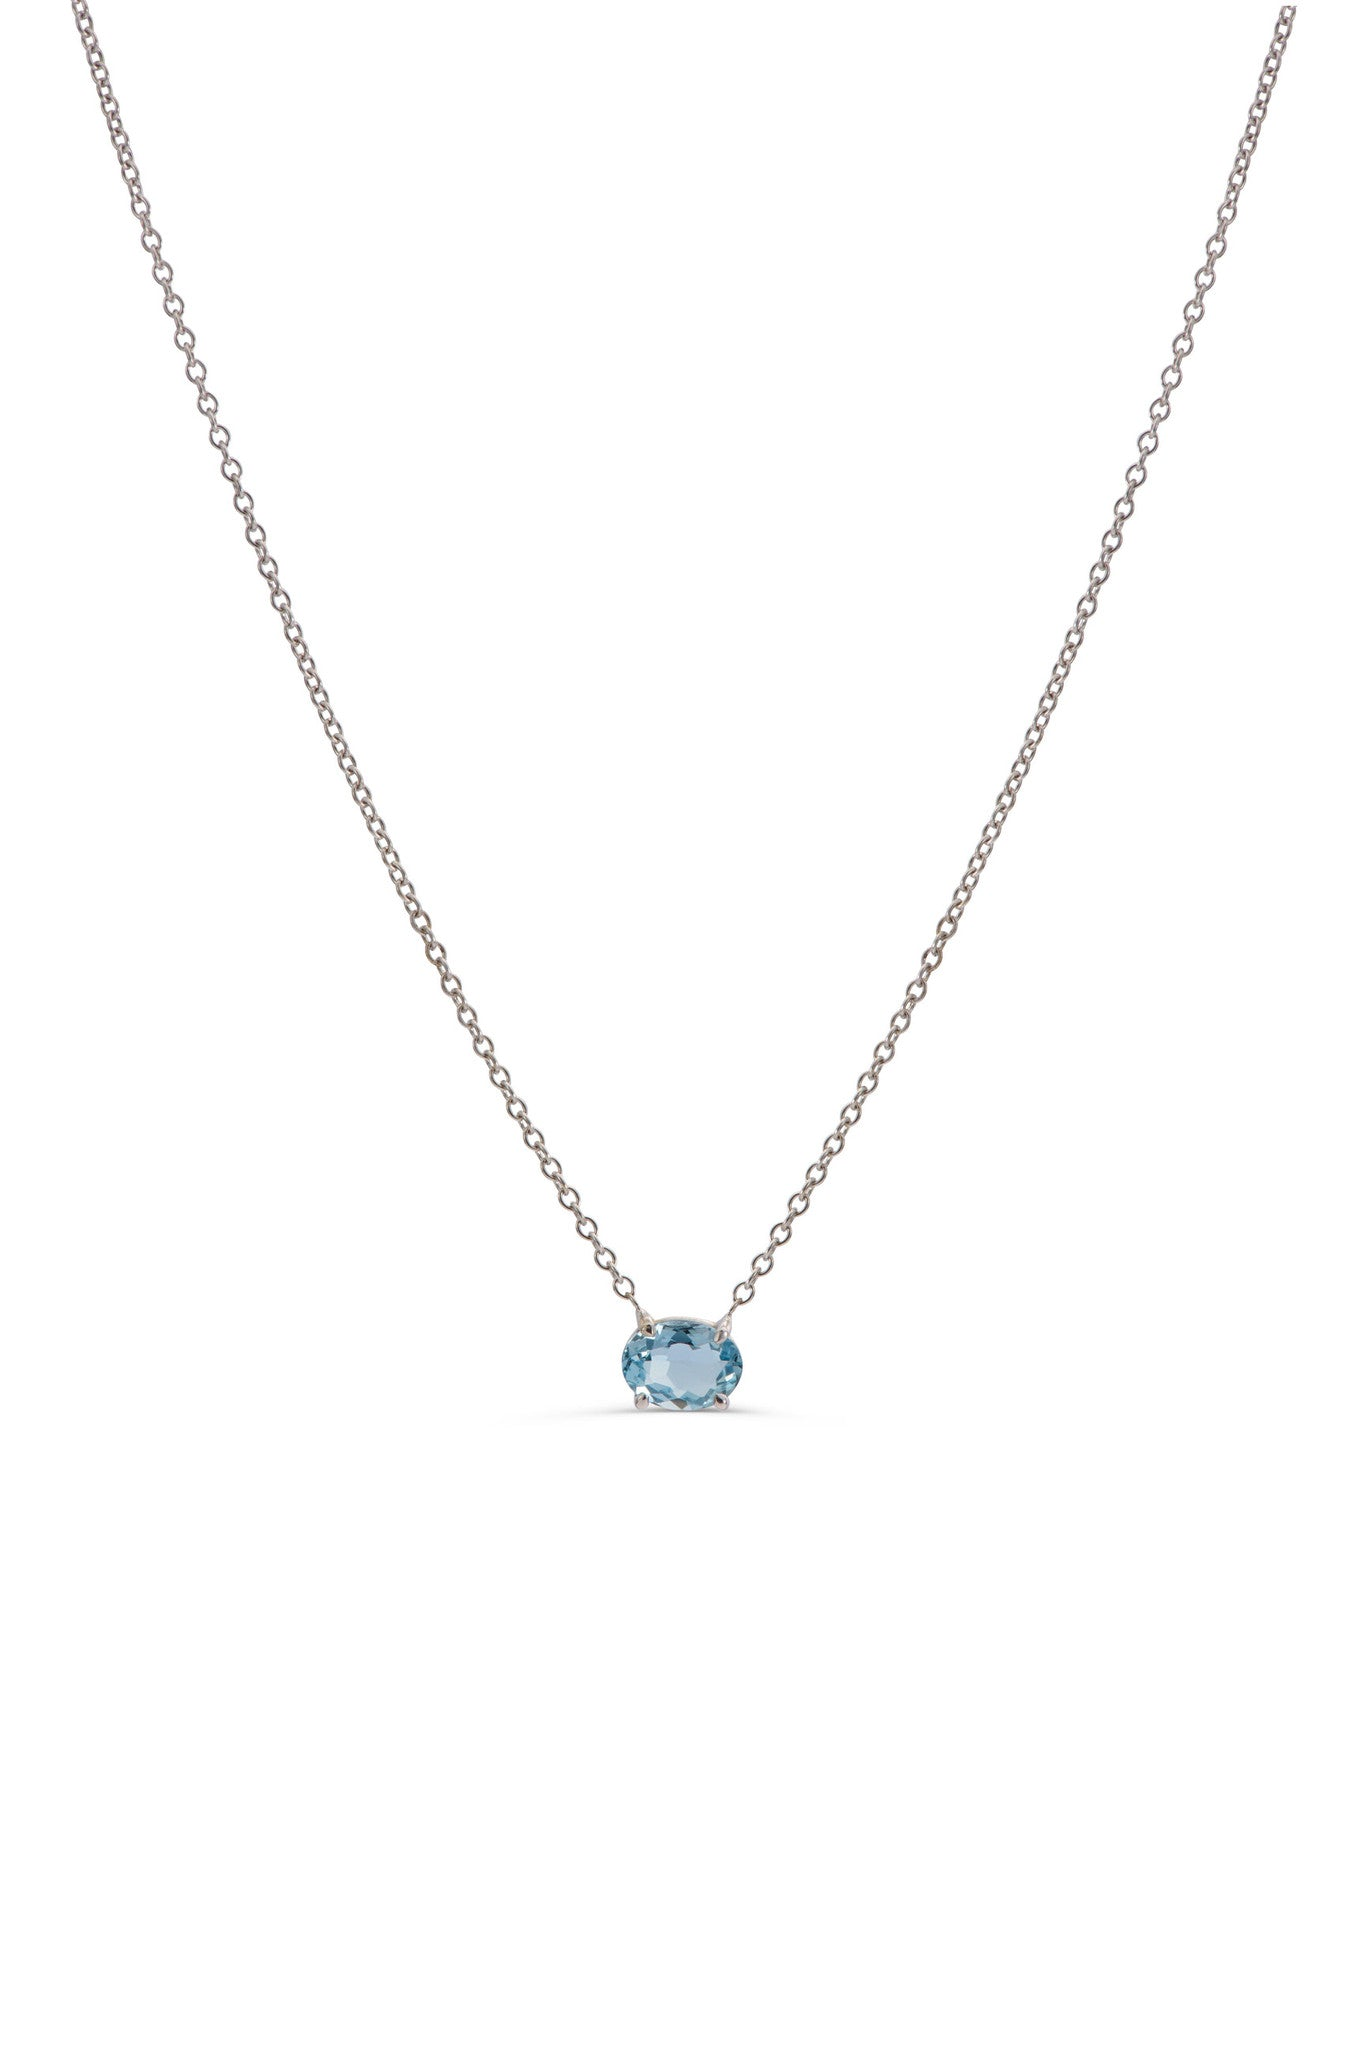 diamonds with jewelry ct pendant gold aquamarine and sterling in silver teardrop